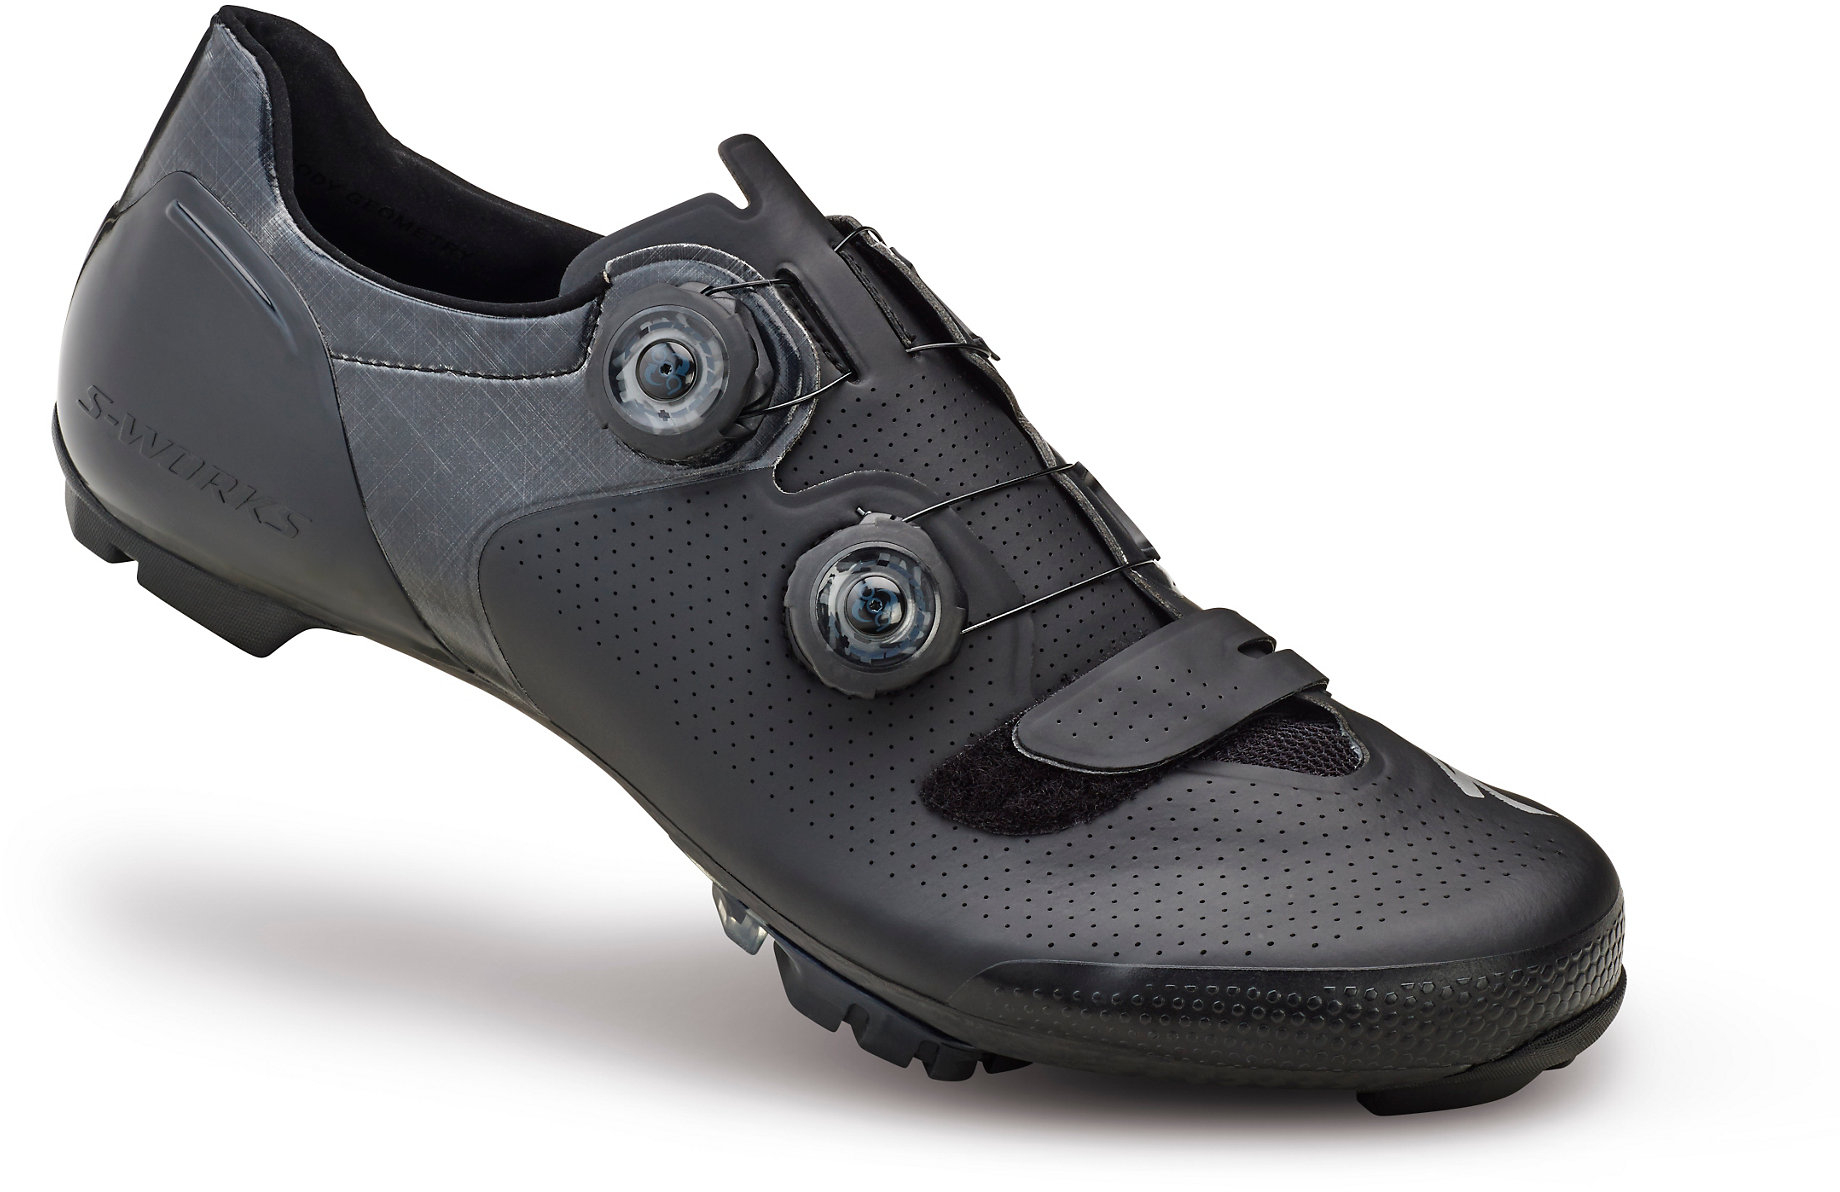 2018 Specialized S Works 6 Xc Mountain Bike Shoes